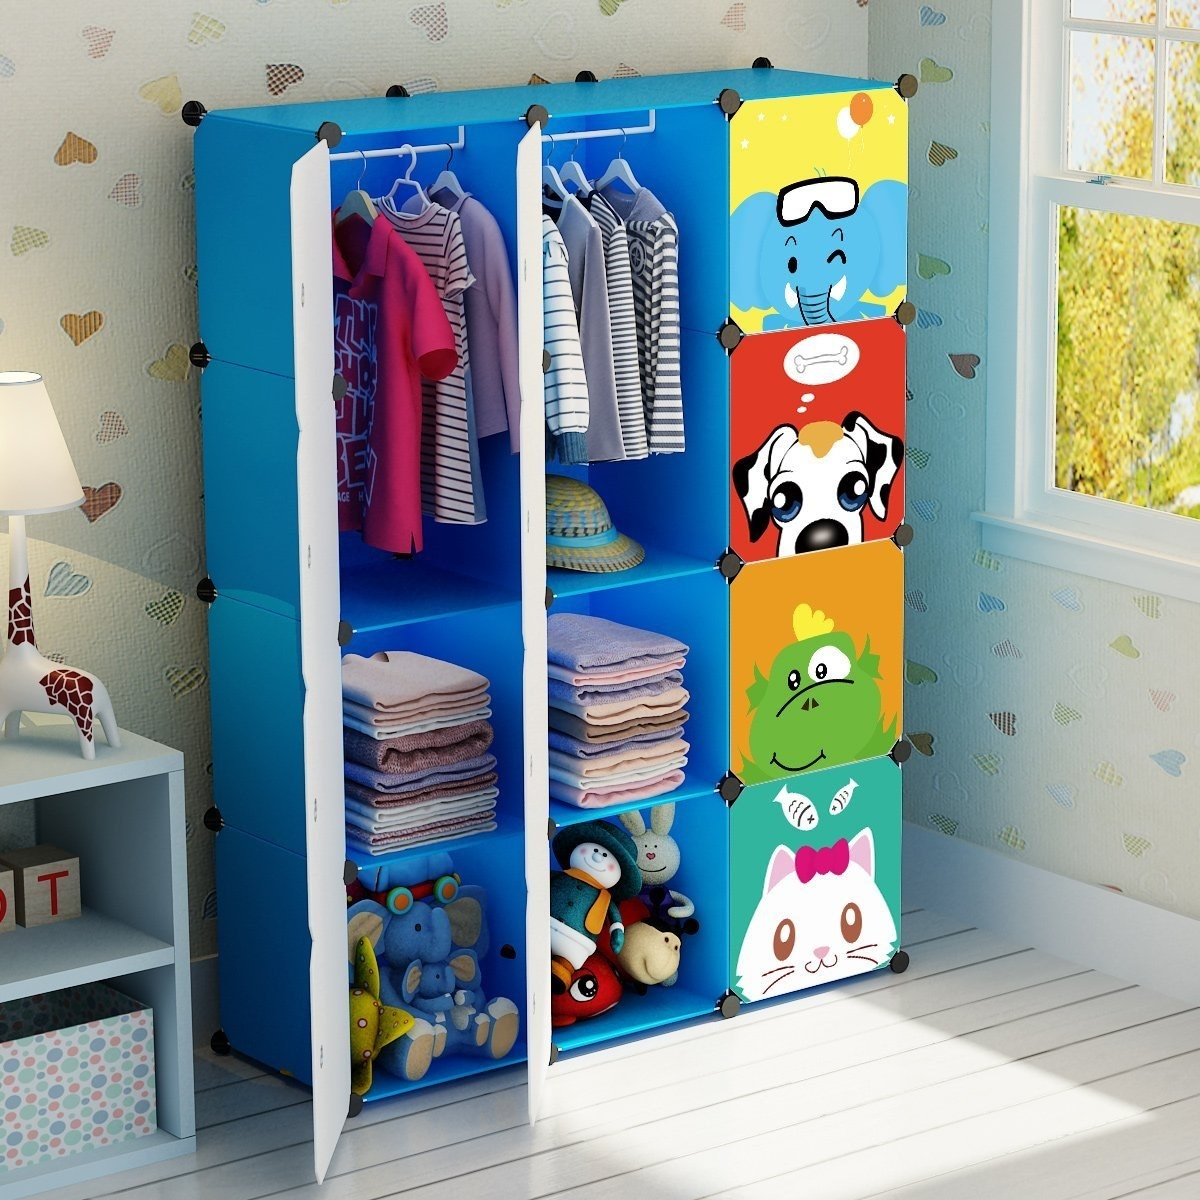 Children S Armoire Closet An Easy Storage Solution: 36 Ridiculously Clever Storage Ideas For All Your Kid's Stuff